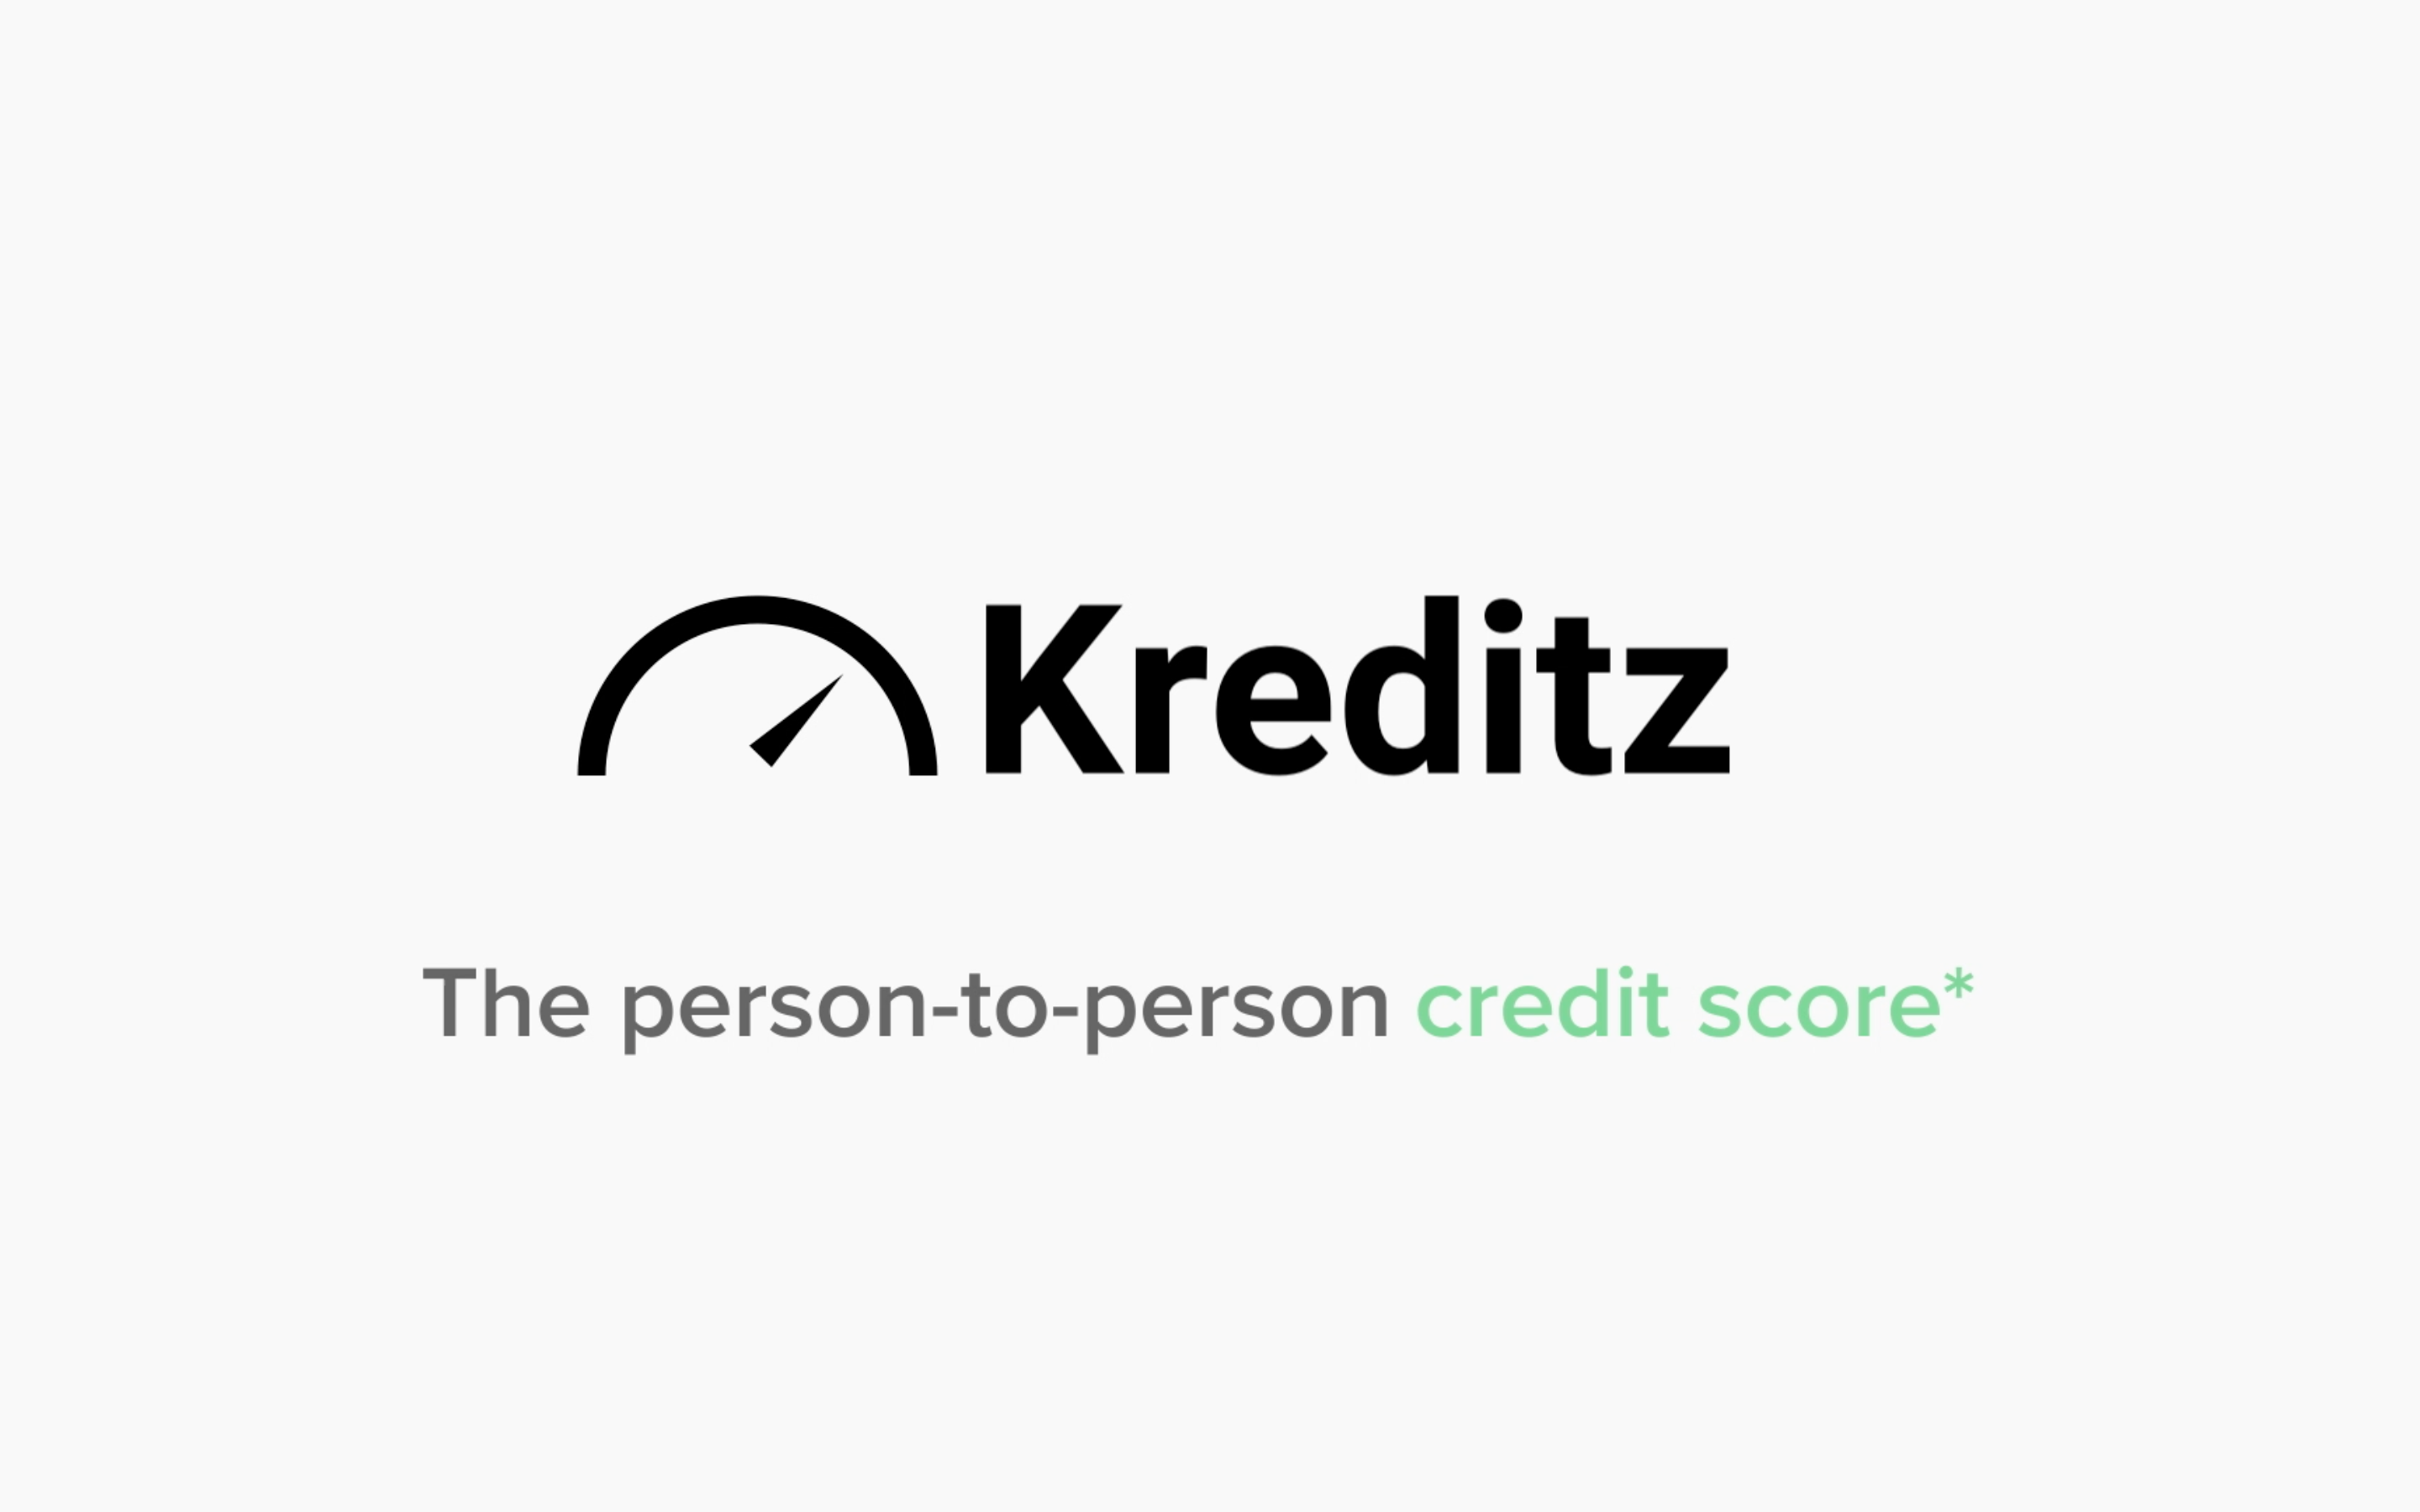 Kreditz Animated Explainer Video by Storisell 44